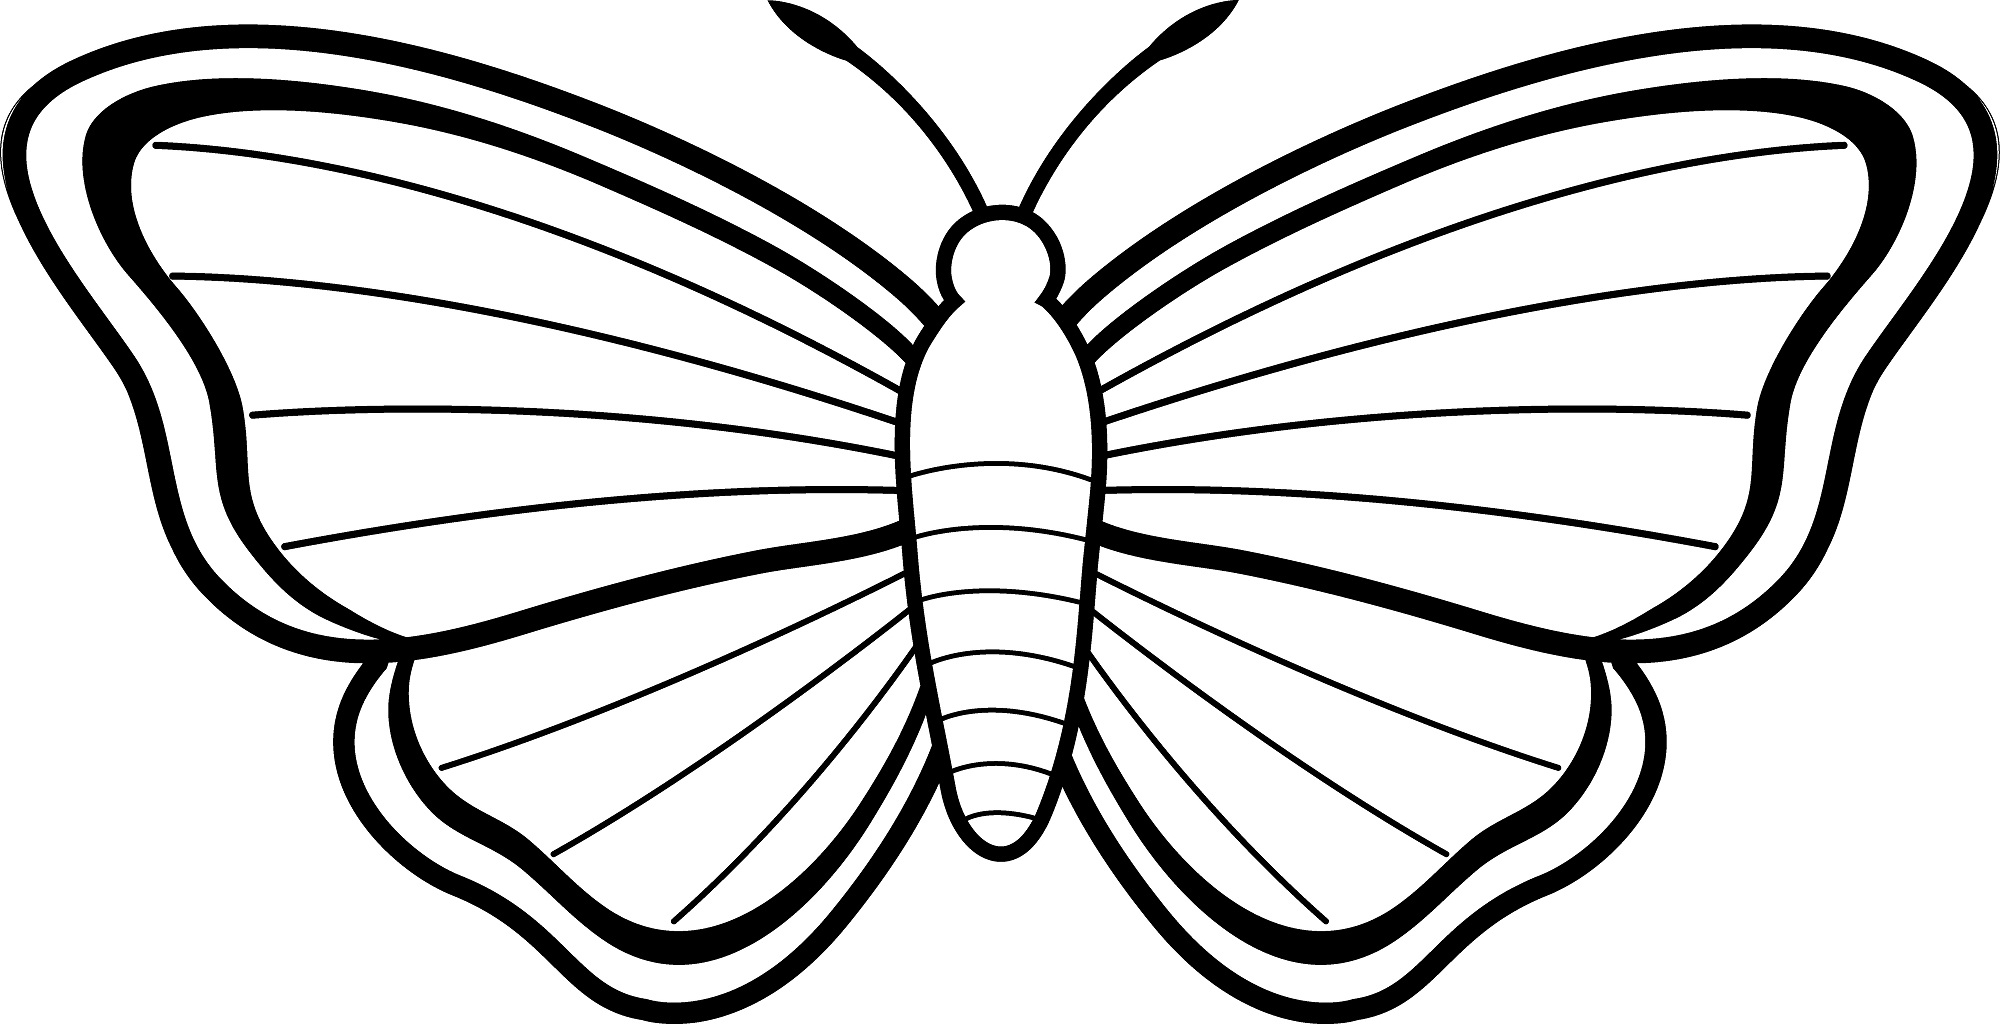 Coloring pages for butterflies - Butterfly Kids Coloring Pages